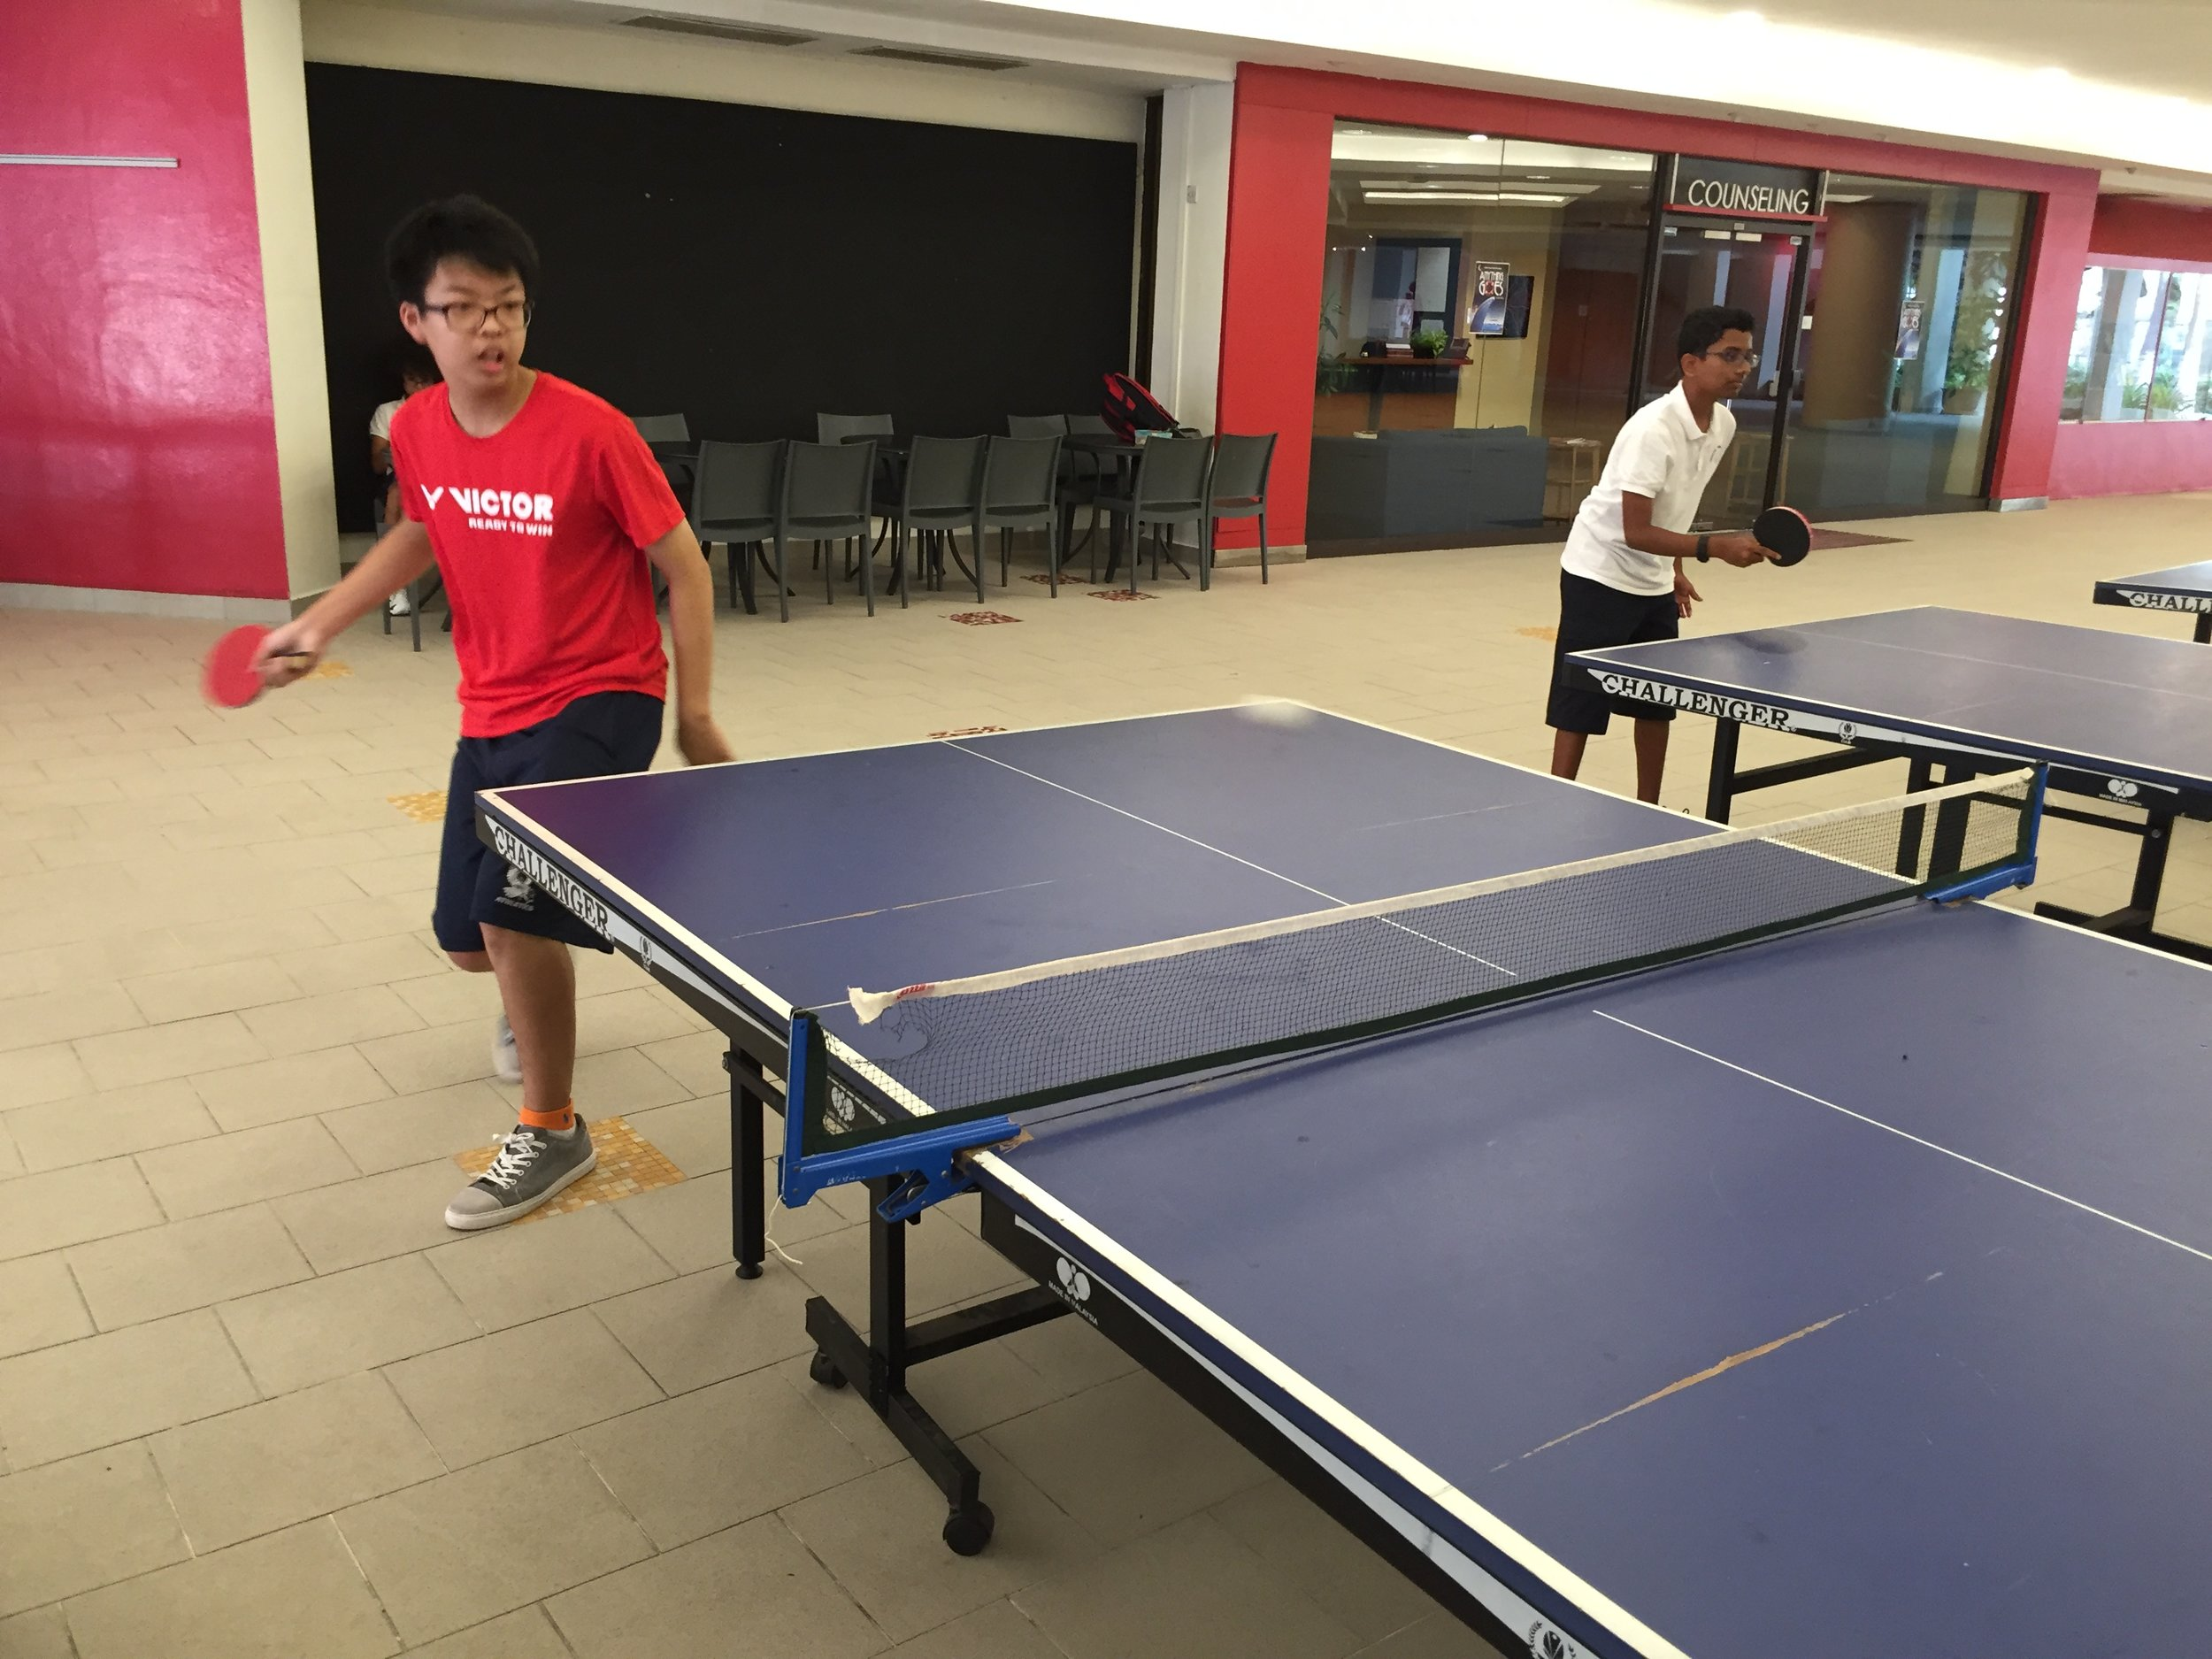 Copy of Table tennis club2.JPG